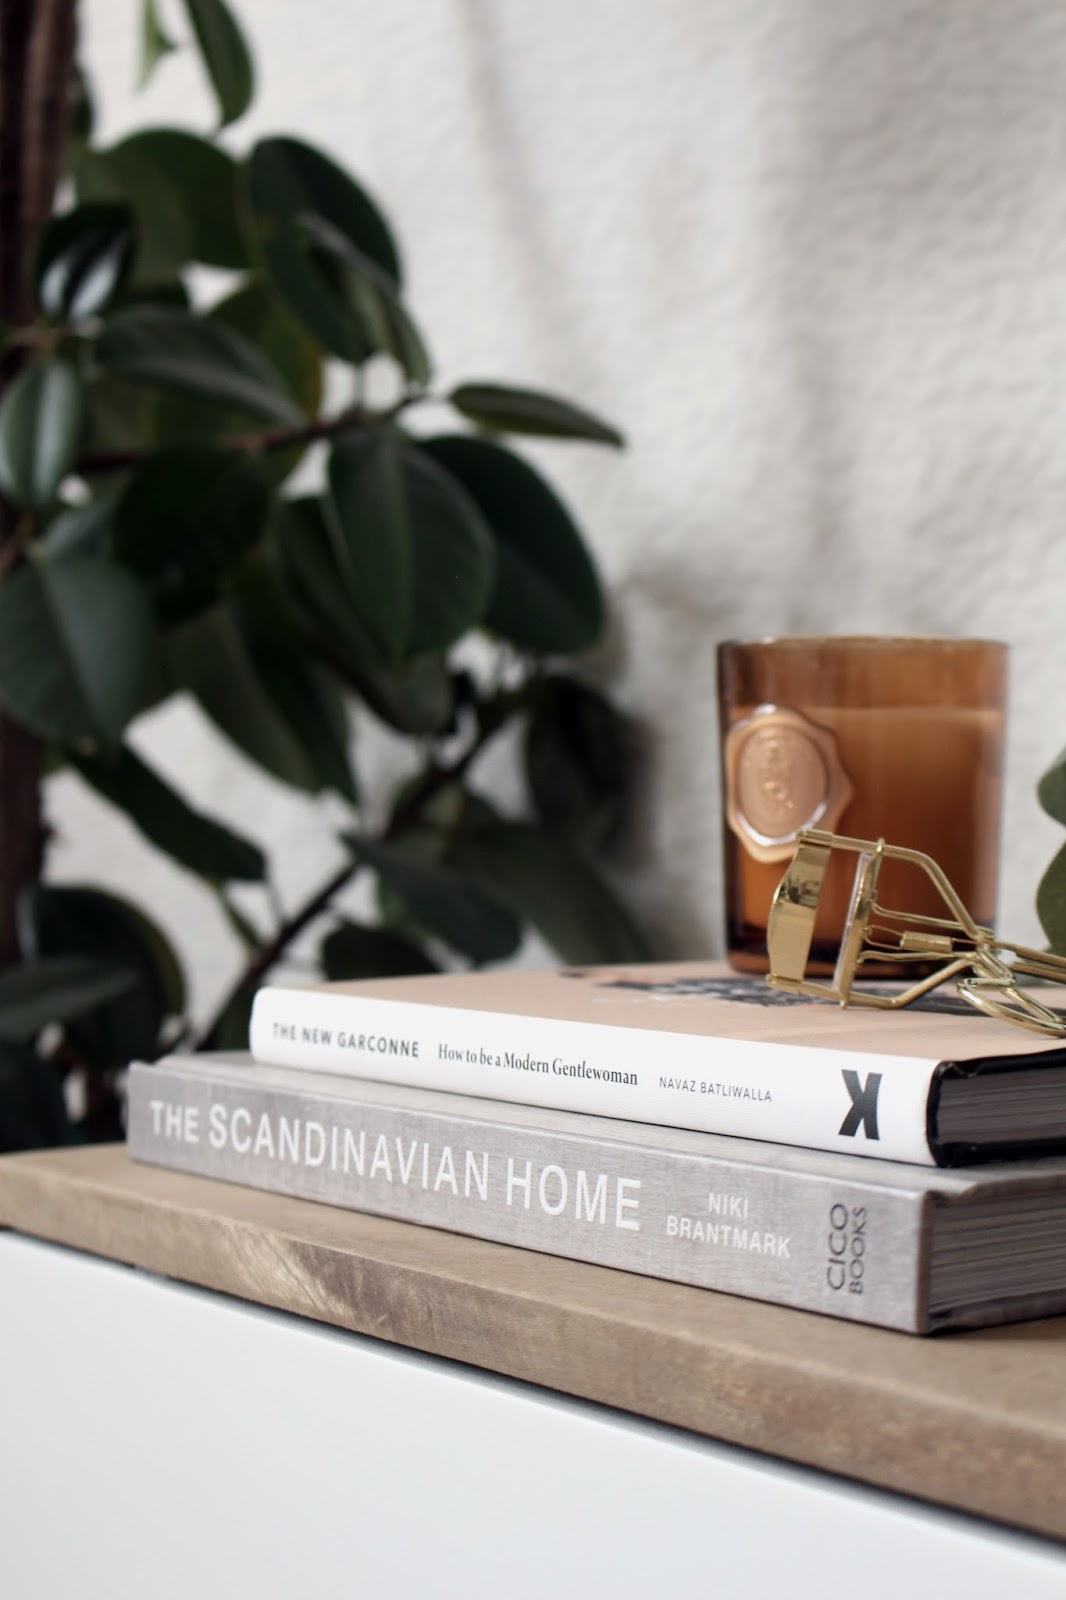 Some of my favourite books from my cliche blogger library